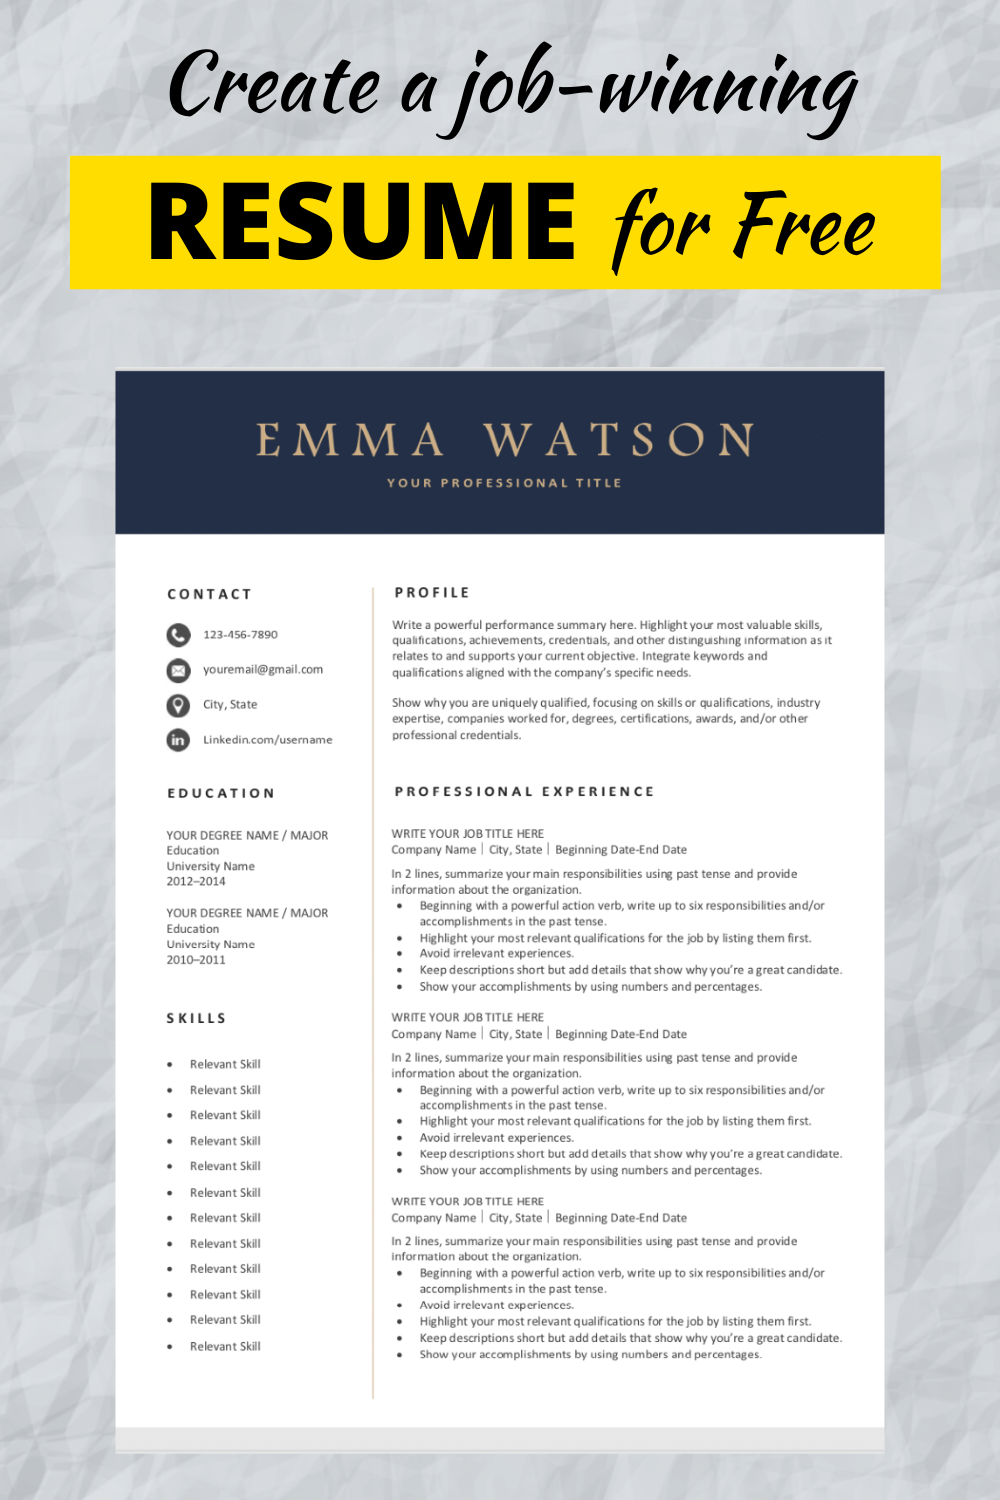 Professional Resume Template Download for Free in 2020